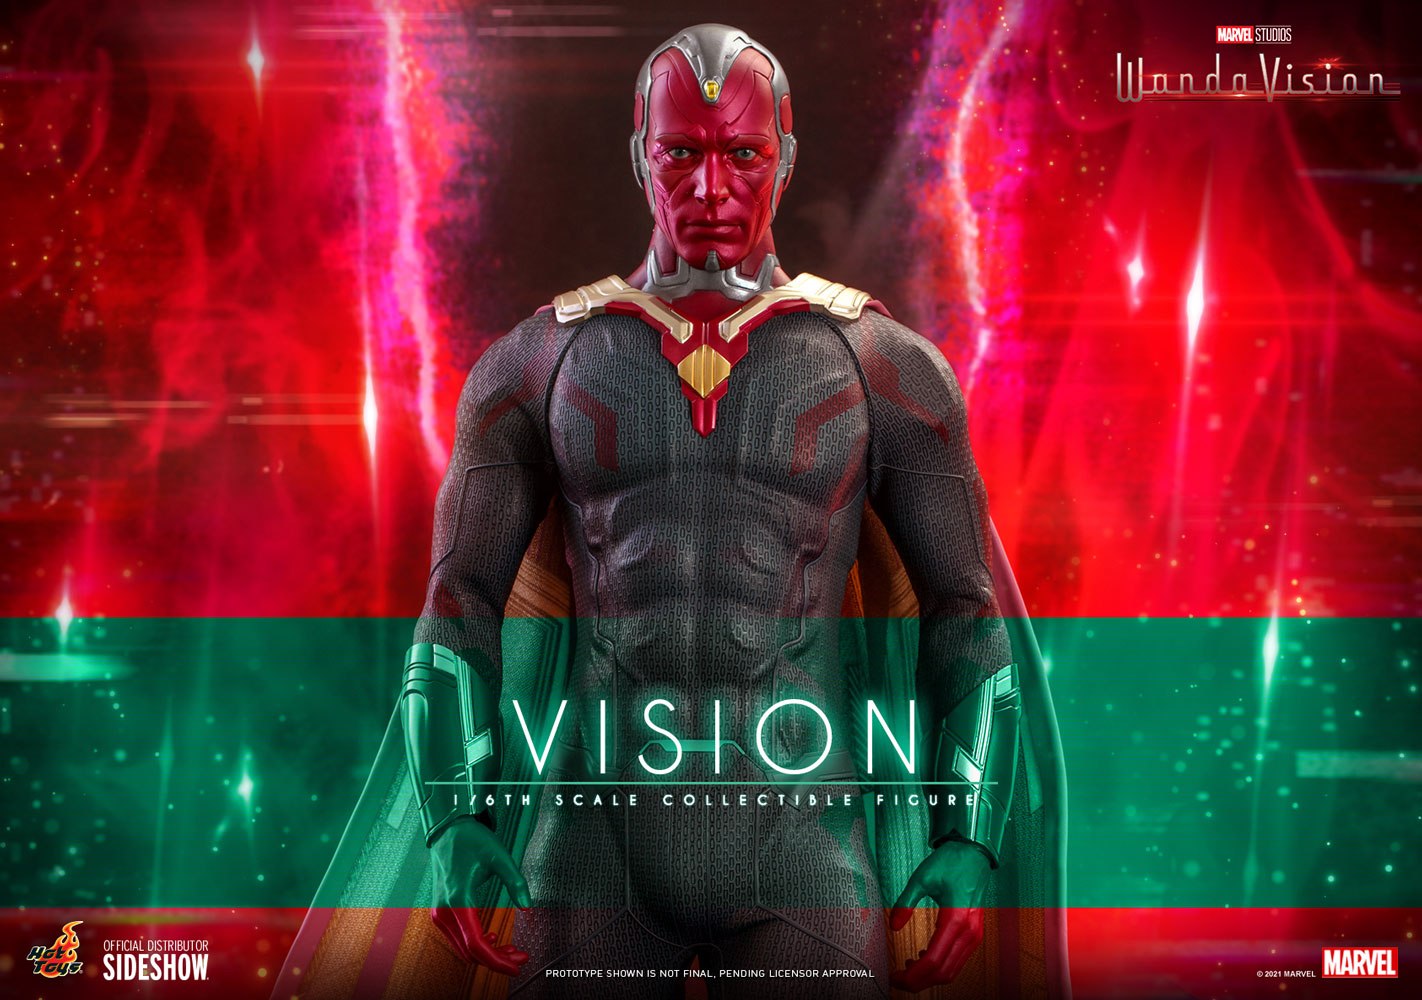 vision-sixth-scale-figure-by-hot-toys_marvel_gallery_6046e0d360033.jpg